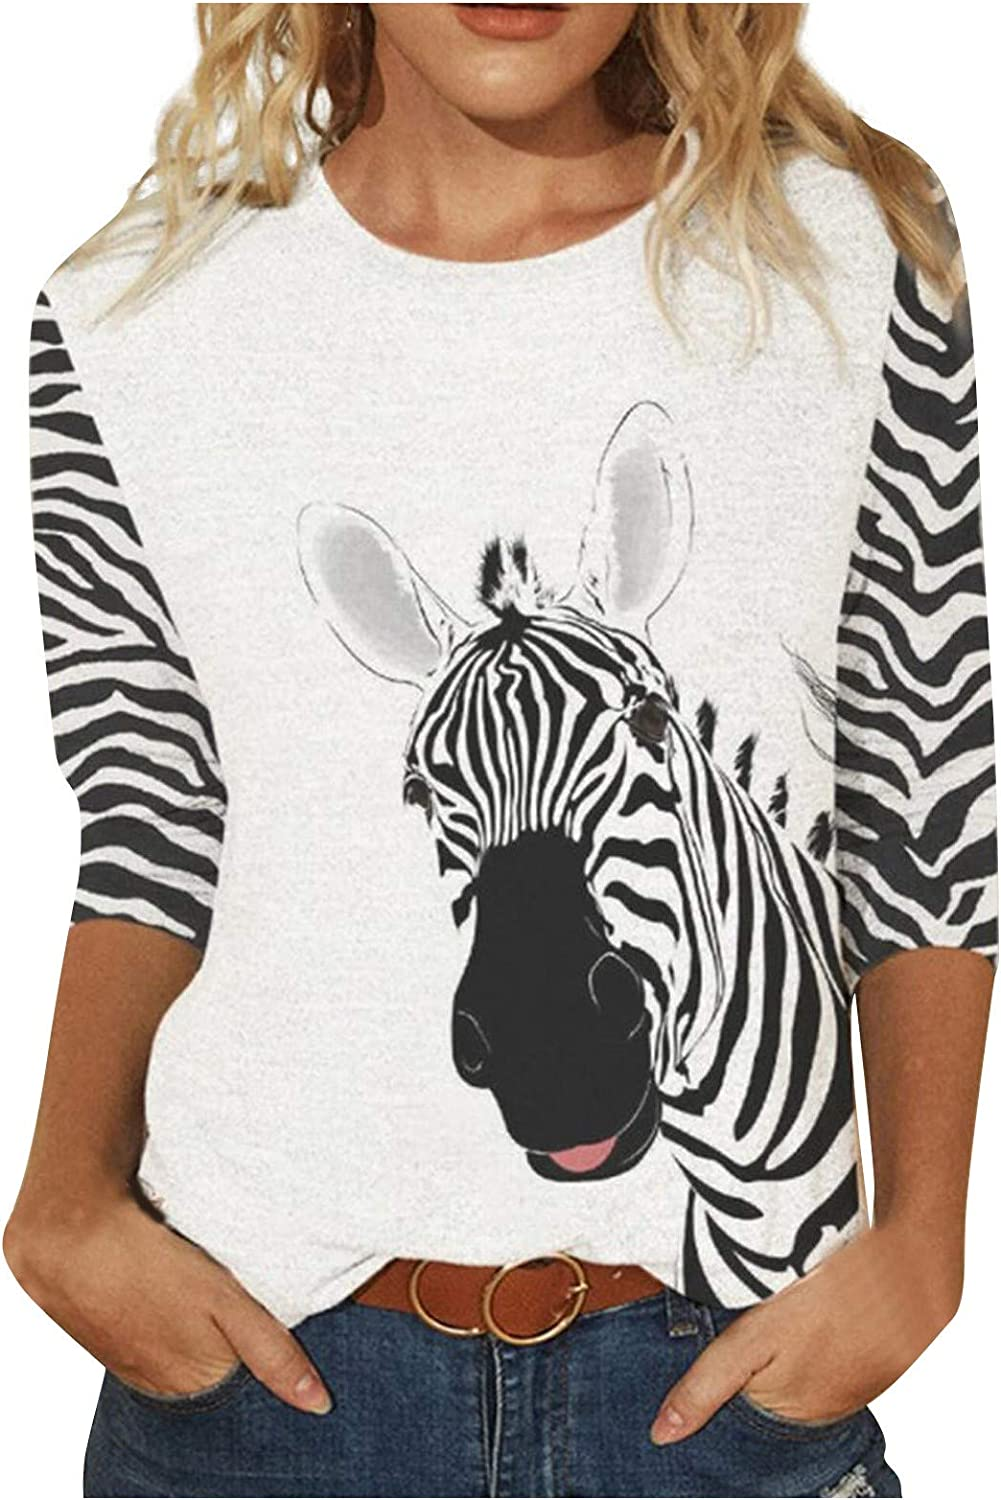 3/4 Sleeve Shirts for Women 3D Tiger Zebra Cat Riding Arabbit Print Loose Fit Funny Graphic Tee Cute Tshirt Tops